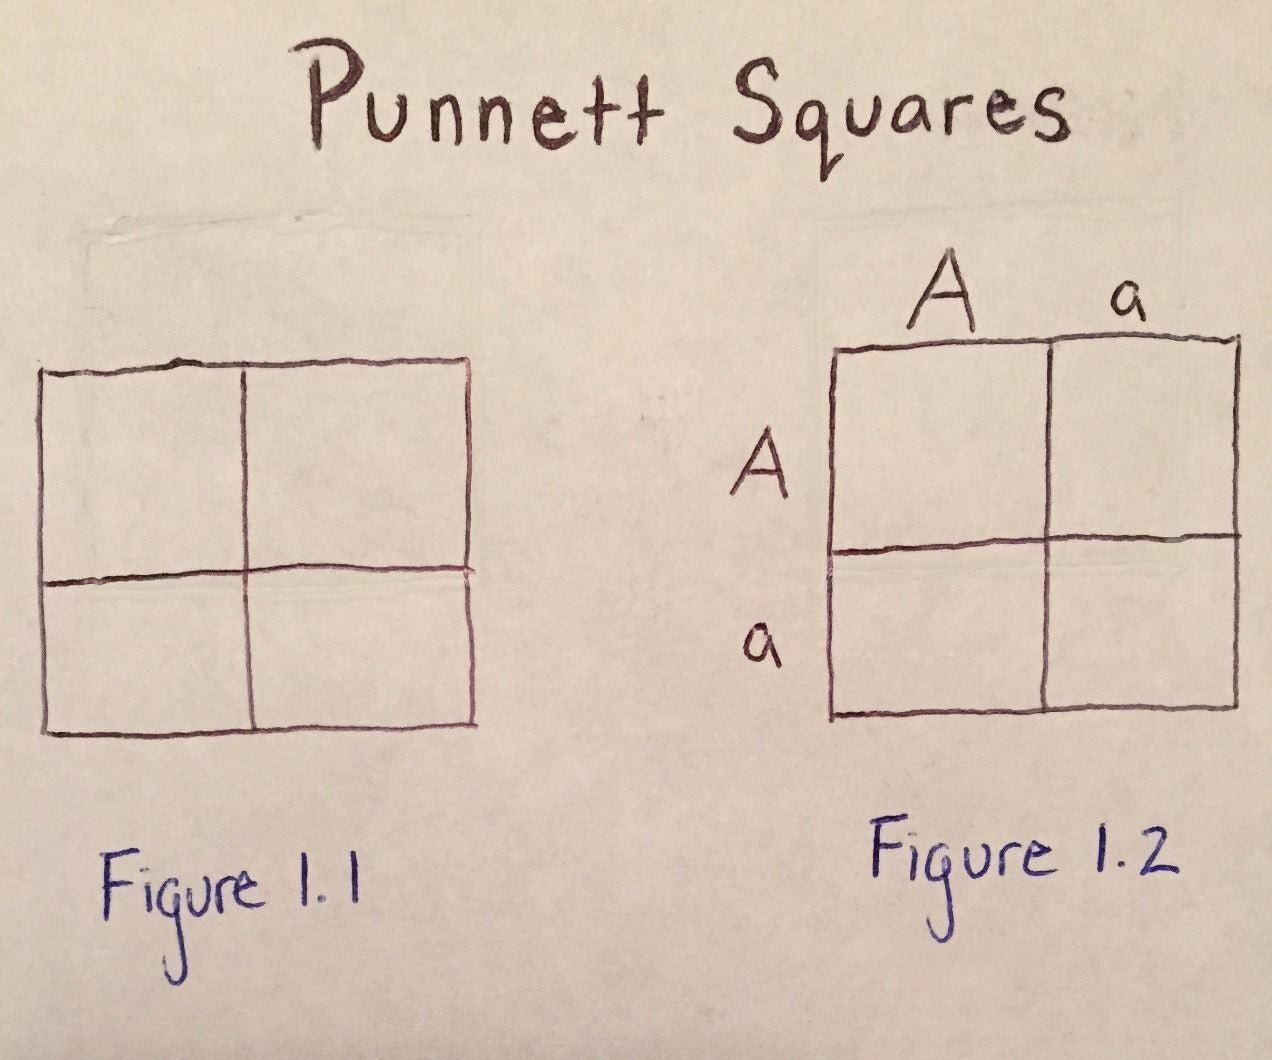 Surprising Using Punnett Squares To Calculate Phenotypic Probabilities 6 Steps Wiring Digital Resources Remcakbiperorg